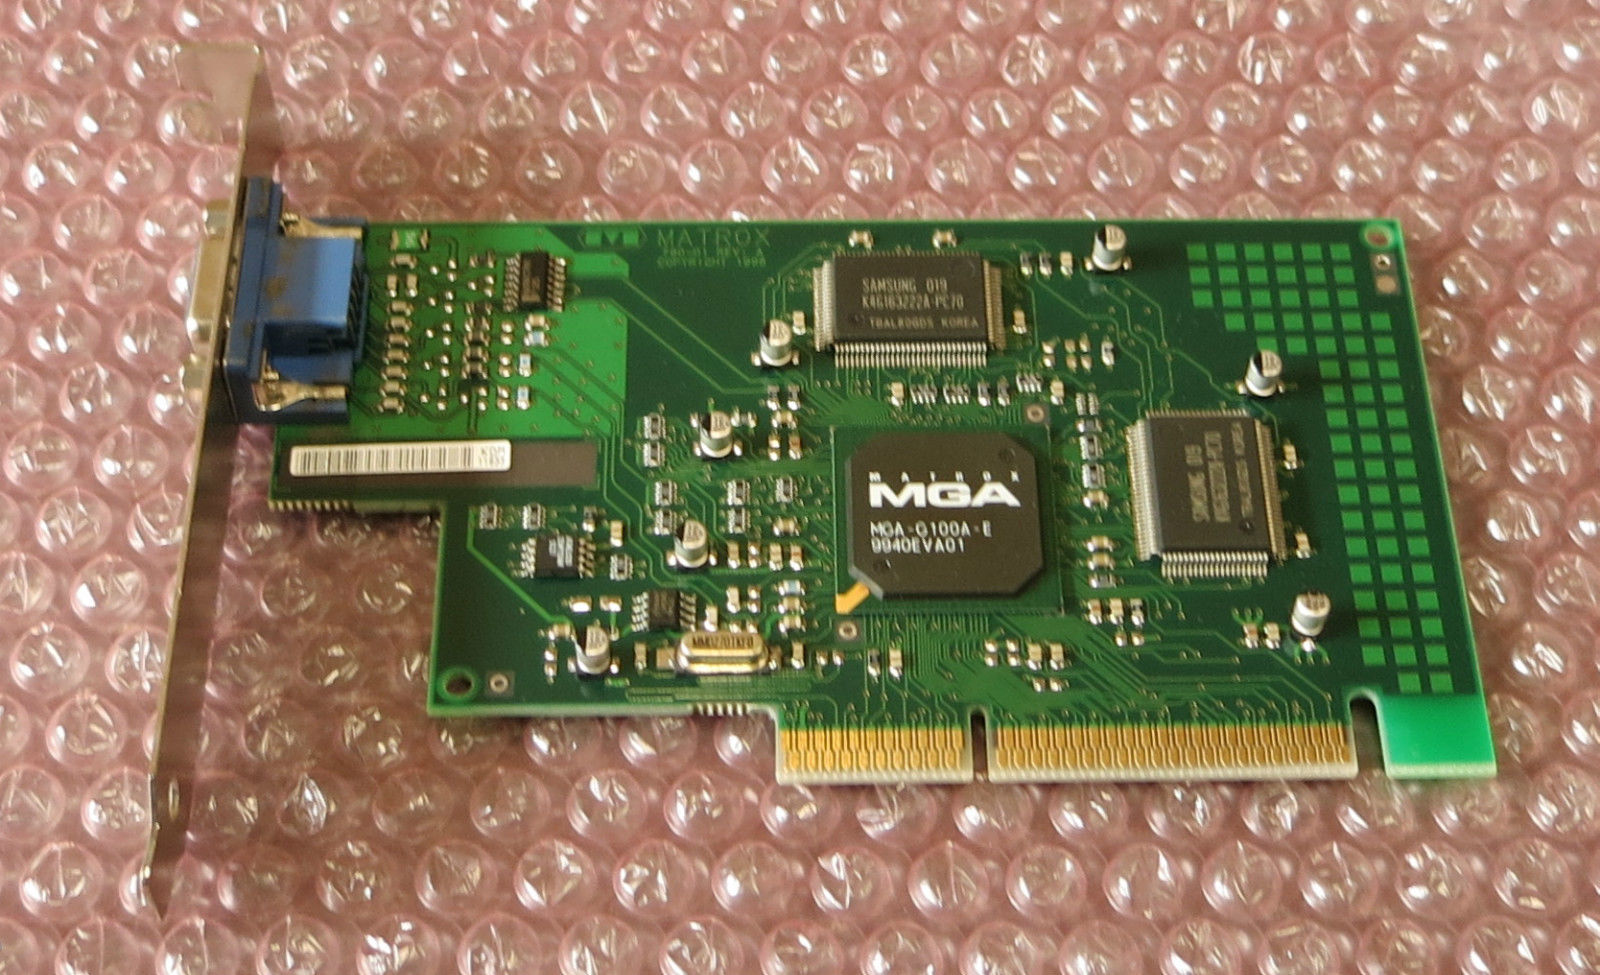 MATROX G100A E WINDOWS DRIVER